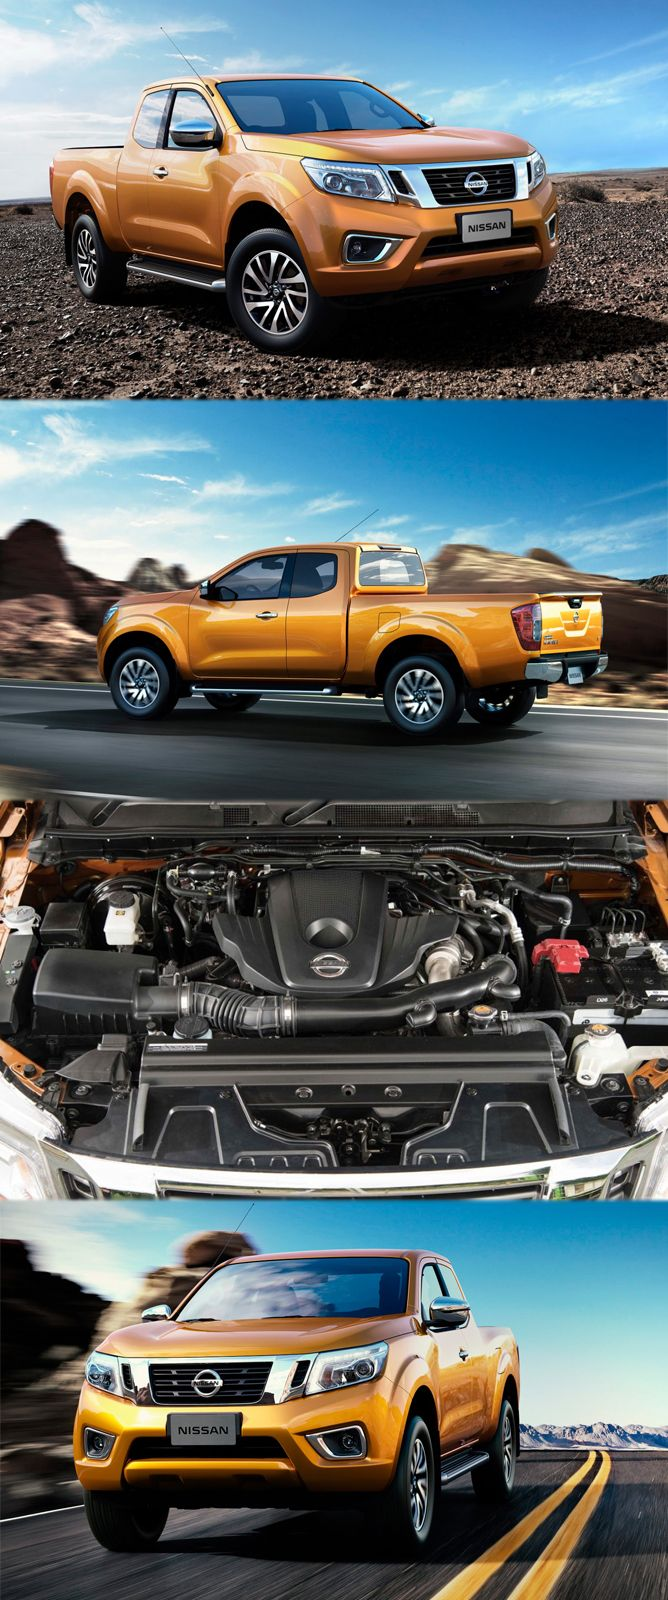 Nissan Navara is A Worthy Pick-Up Visit for more details at: https://www.reconditionengines.co.uk/blog/nissan-navara-reviewed/